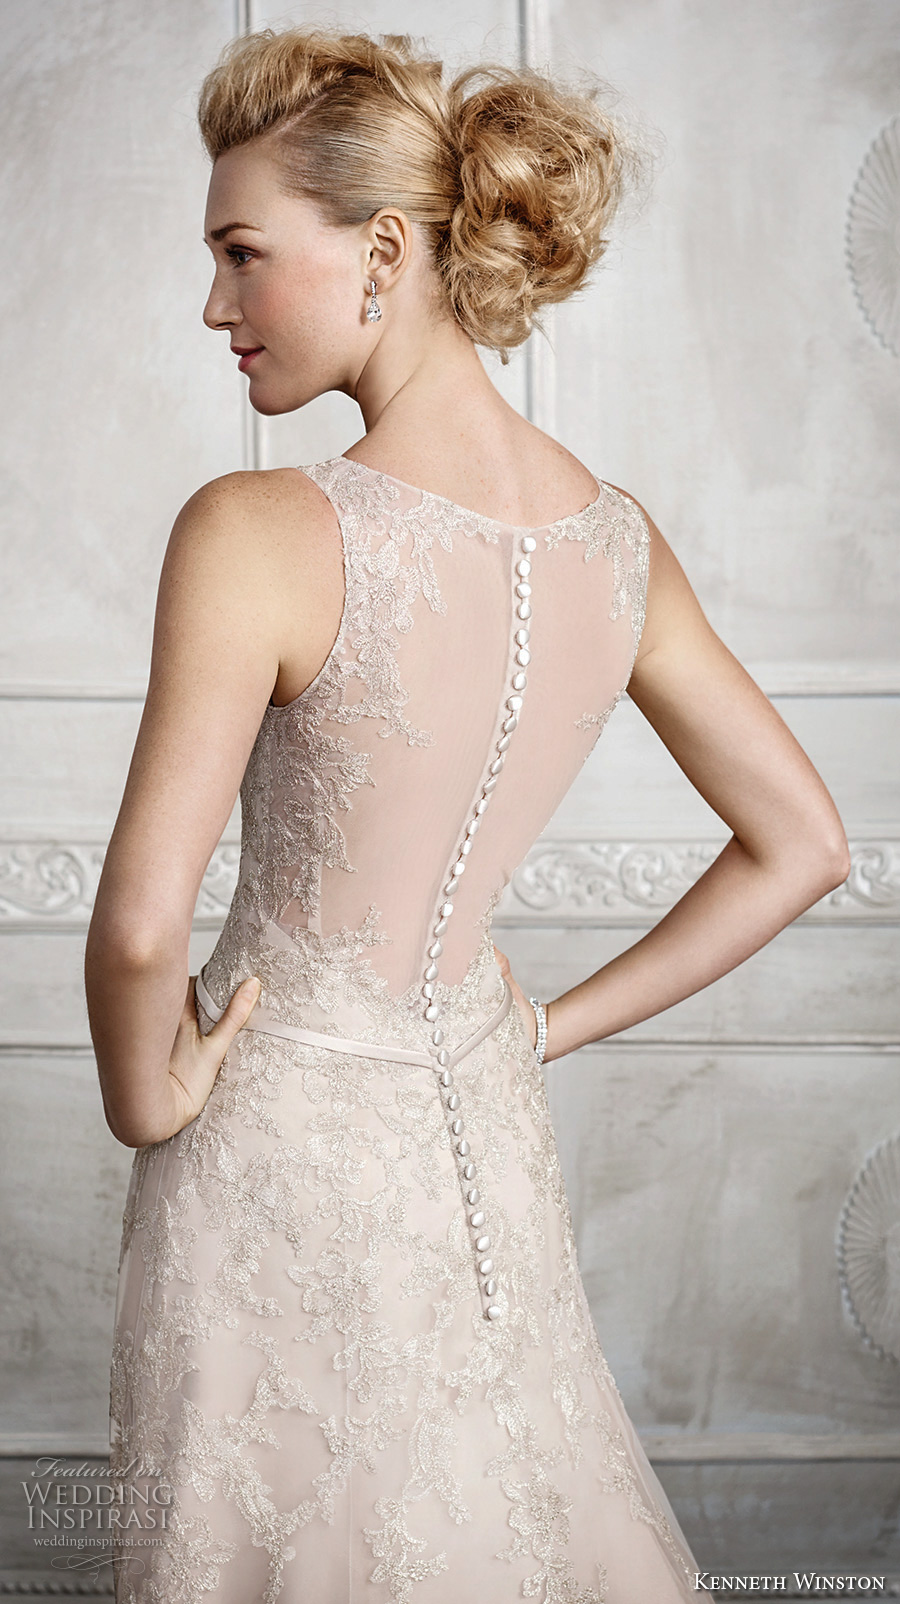 kenneth winston fall 2016 bridal sleeveless illusion boat v neckline heavily embellished bodice beautiful princess gold color a line wedding dress illusion back chapel train (1665) zbv